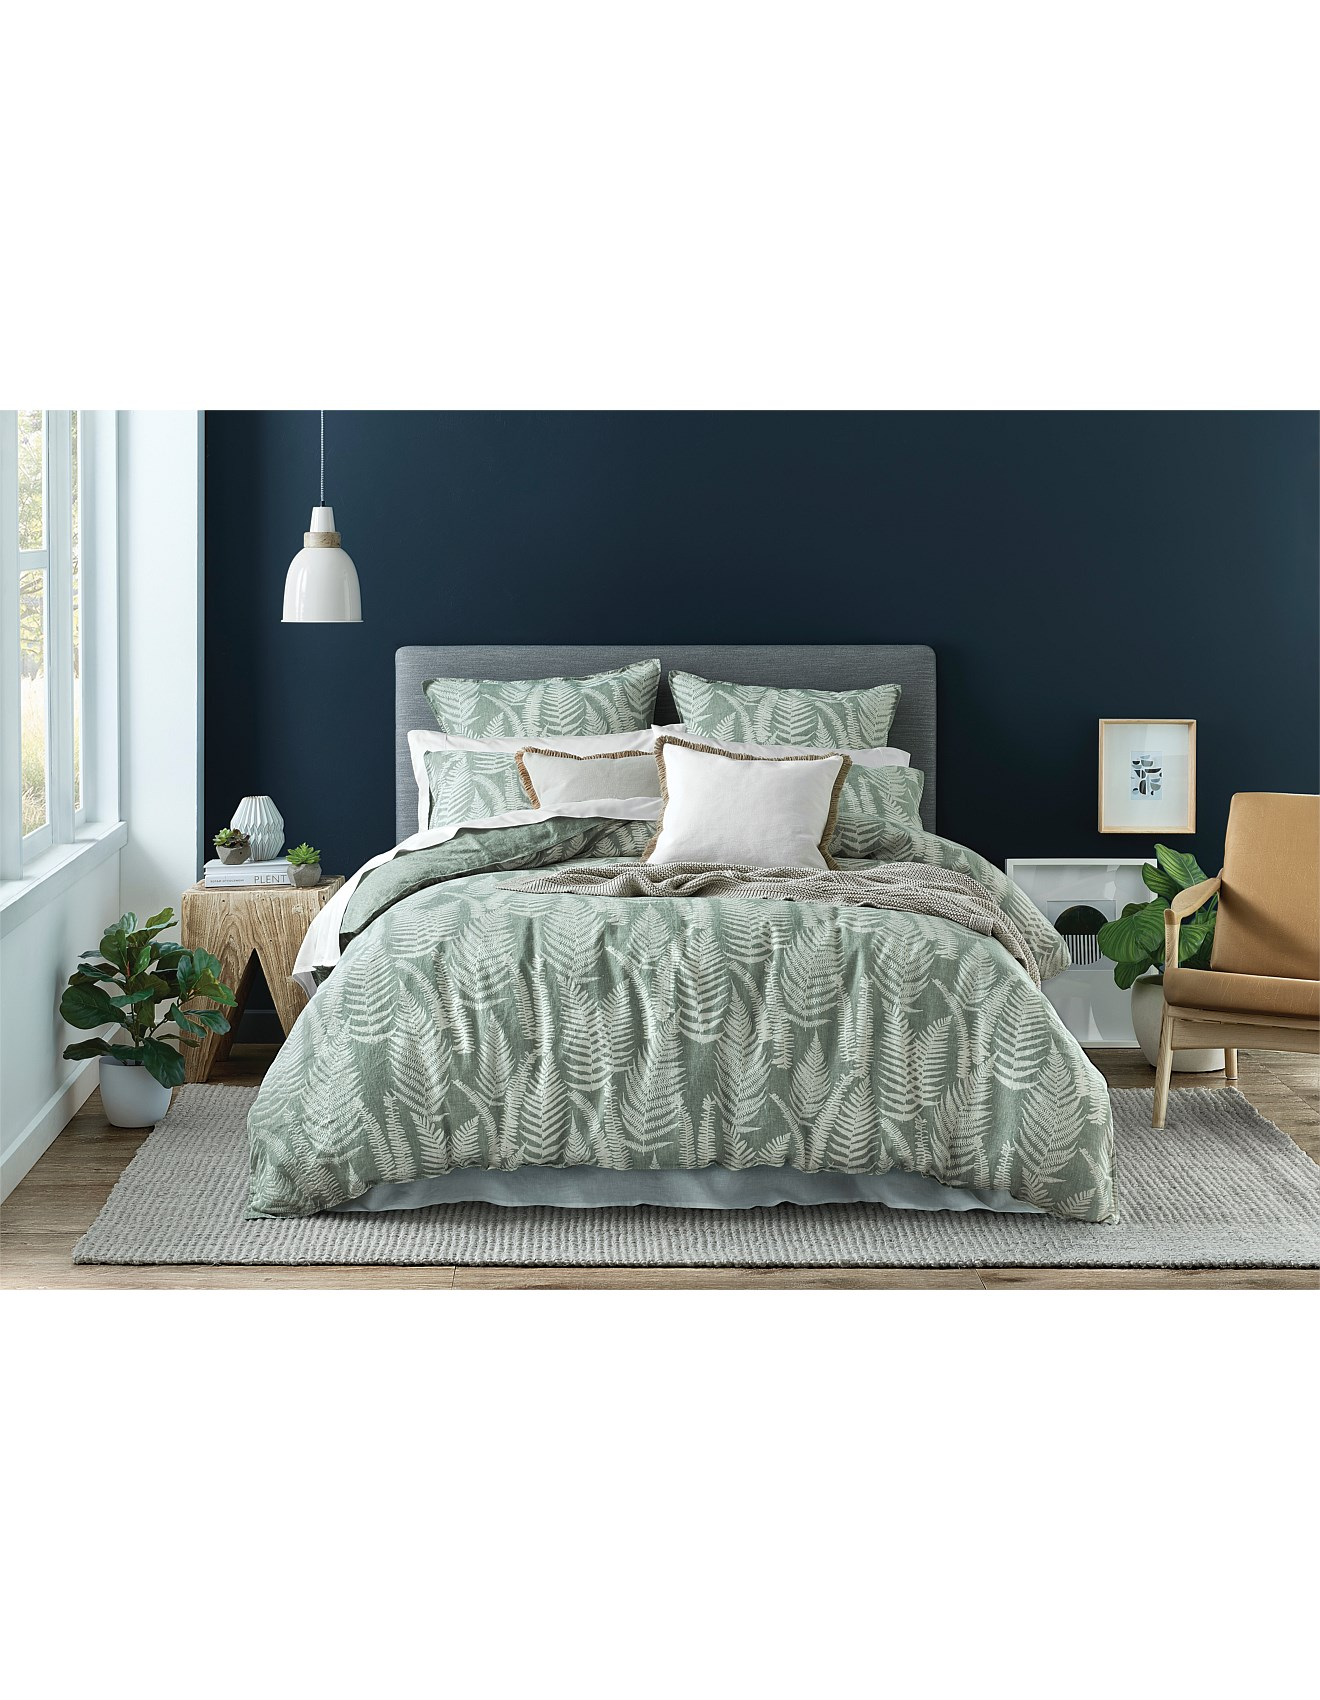 Double Bed Afterpay Fern Double Bed Quilt Cover